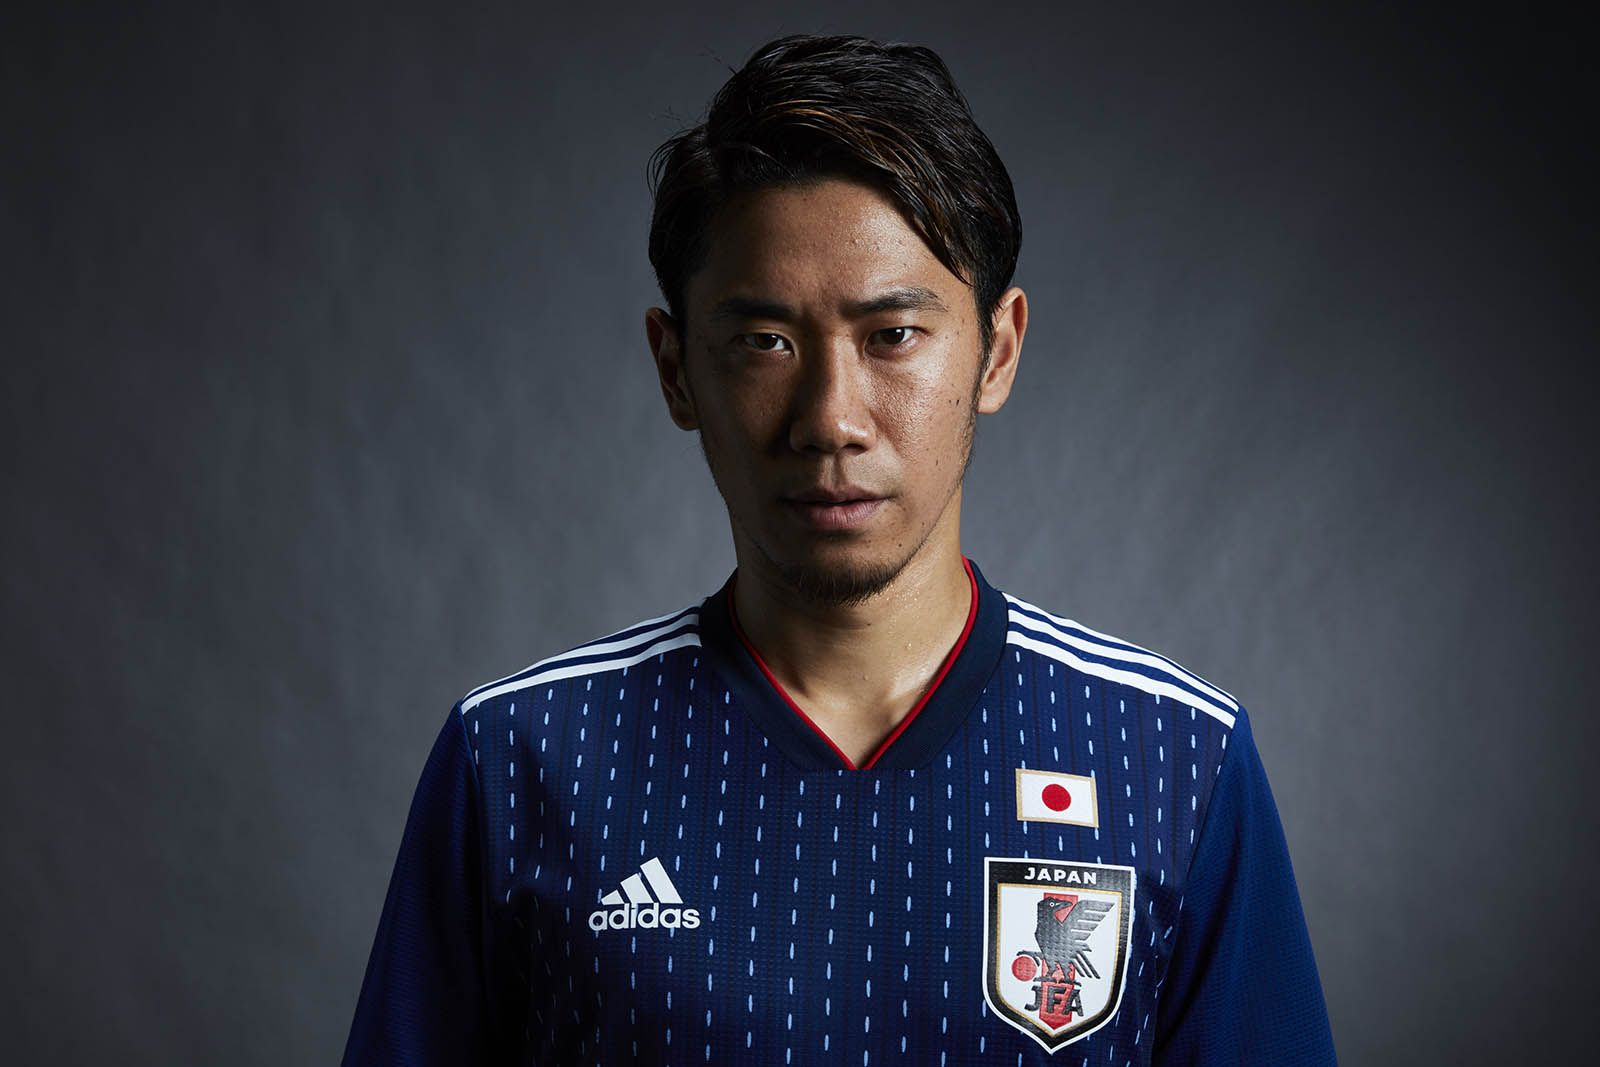 The Adidas Japan 2018 World Cup Home Kit Introduces A Clean Look With A Stripe Pattern On The Front Classic Football Shirts World Cup Kits Football Shirts